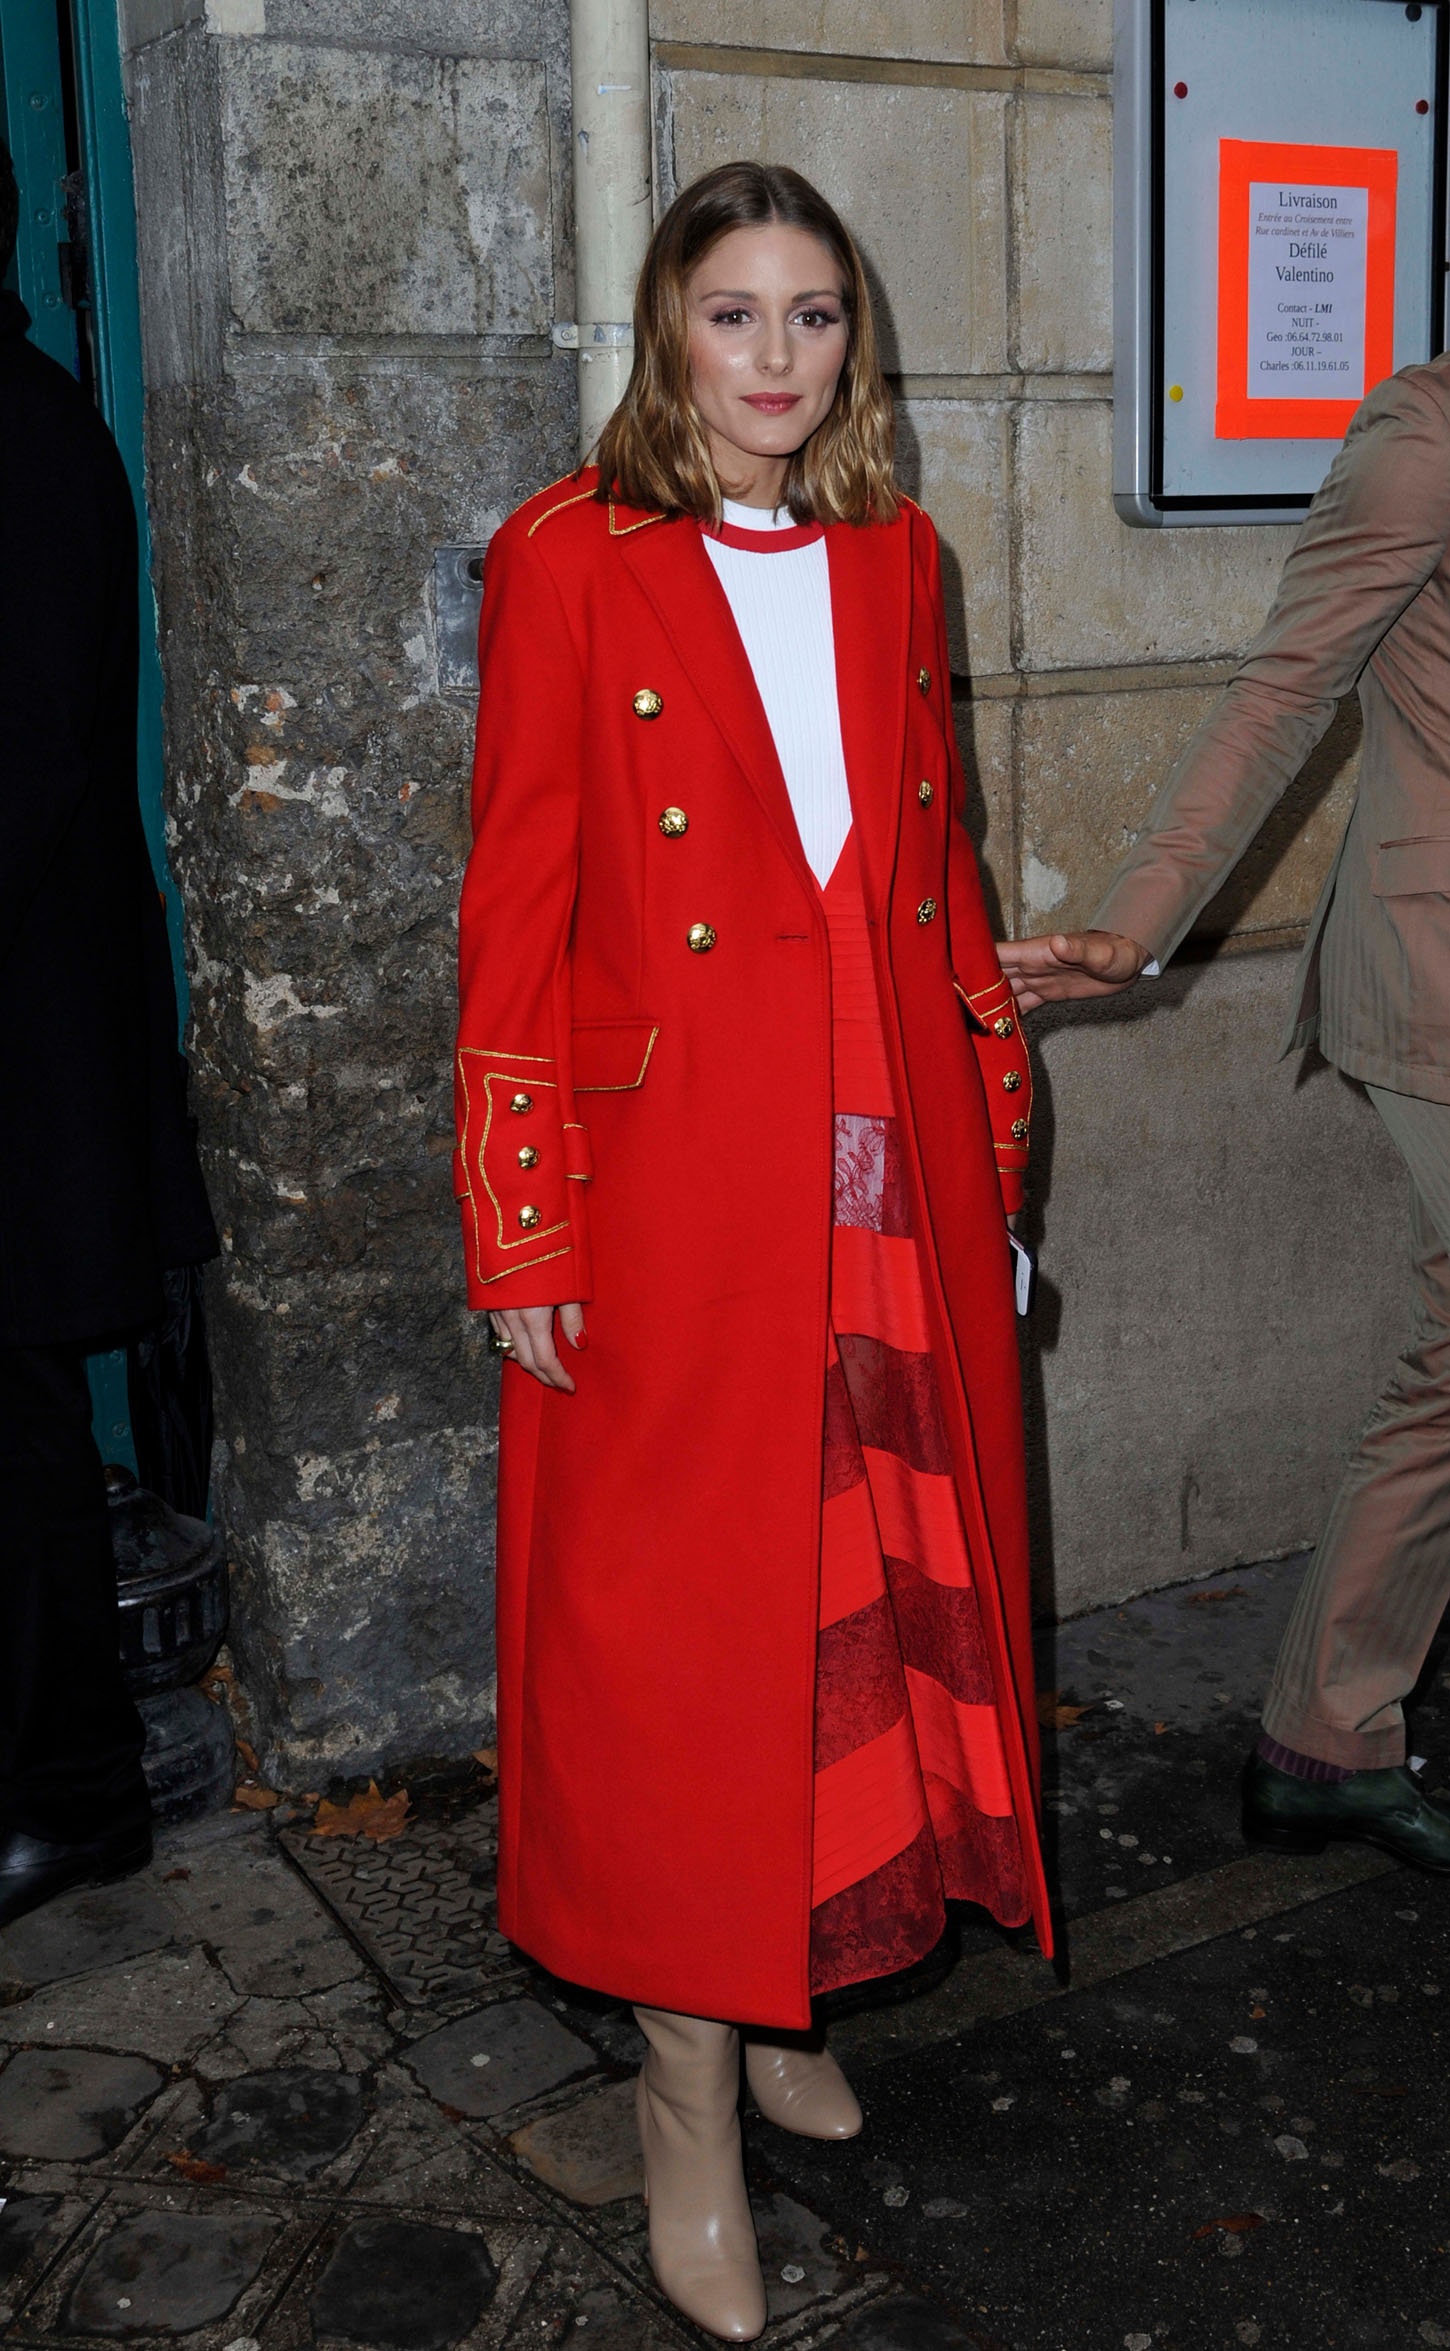 October 2, 2017 - Paris, France - October 1 2O17, PARIS FRANCE the Valentino Show Spring Summer 2010/2018. Olivia Palermo leaves the show., Image: 351398617, License: Rights-managed, Restrictions: * Belgium, France, Germany and United Kingdom Rights OUT *, Model Release: no, Credit line: Profimedia, Zuma Press - Entertaiment